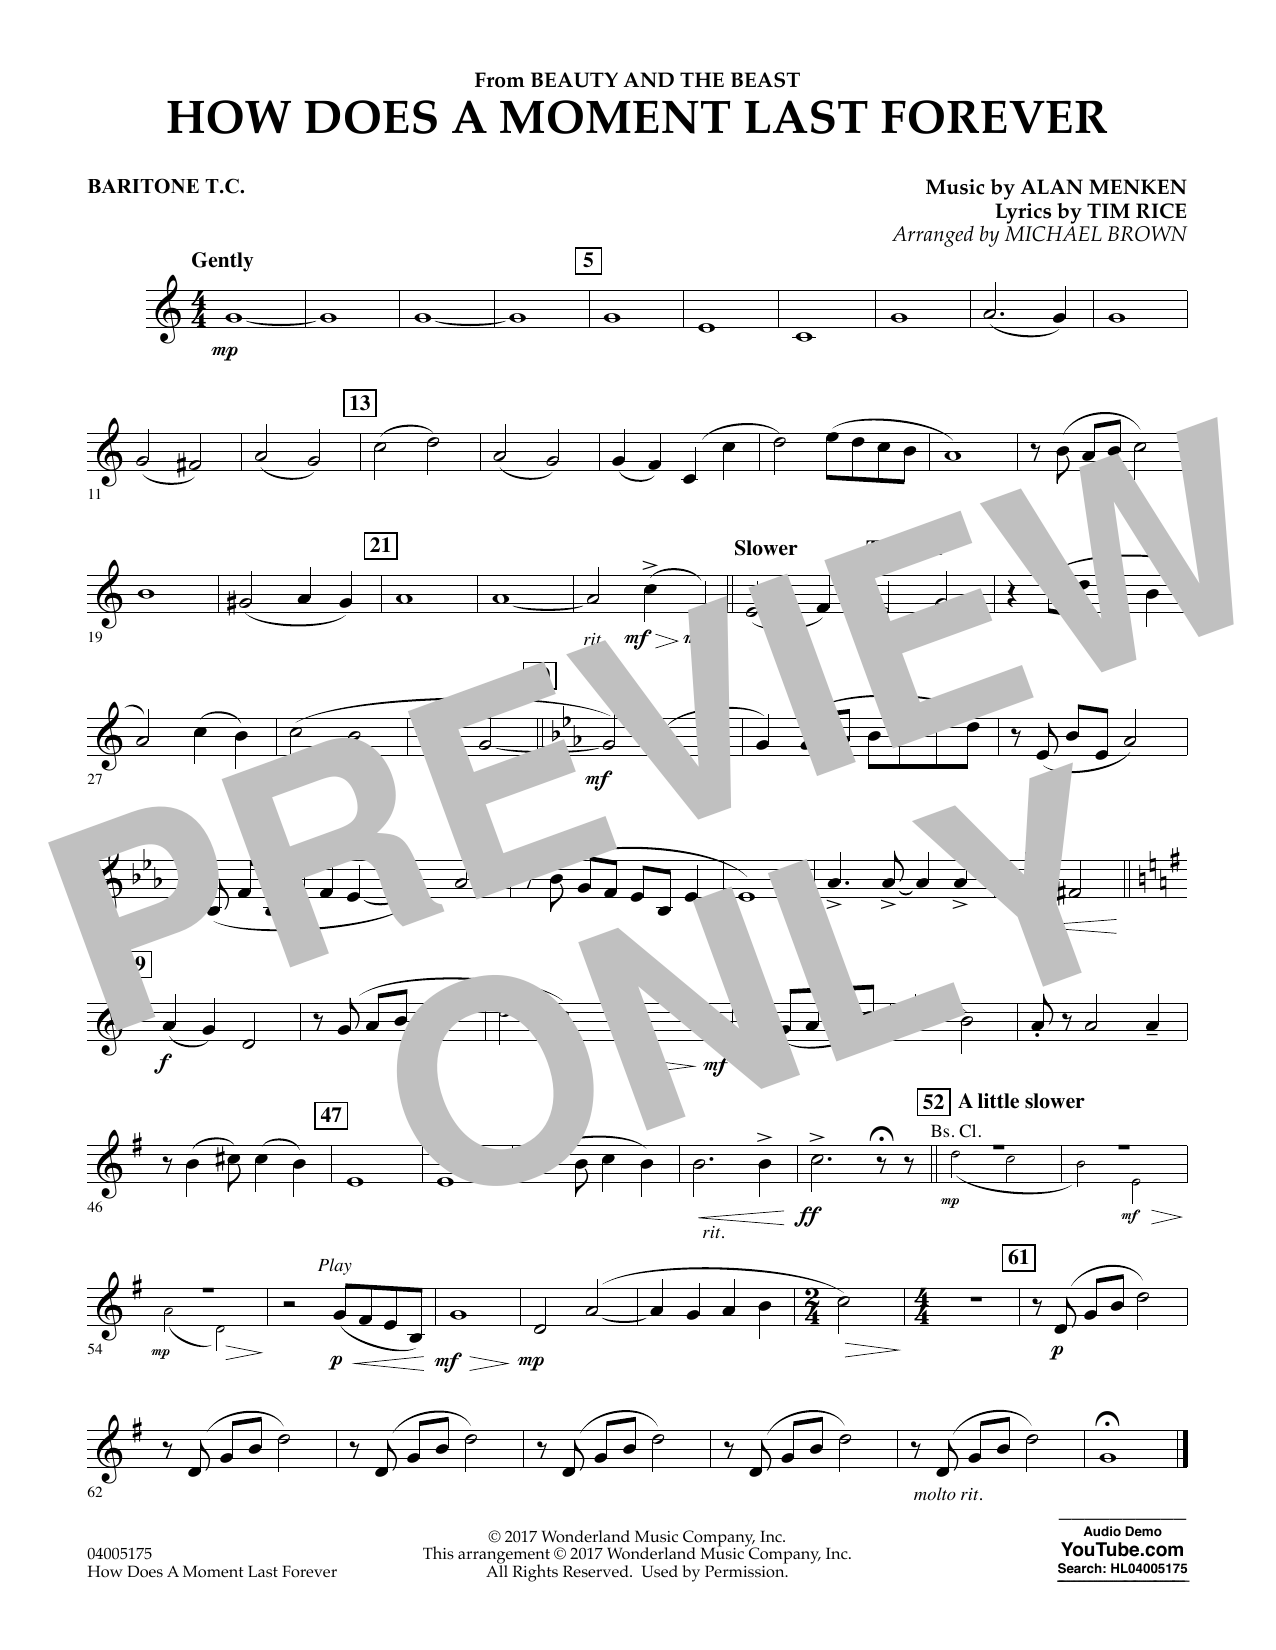 How Does a Moment Last Forever (from Beauty and the Beast) - Baritone T.C. (Concert Band)